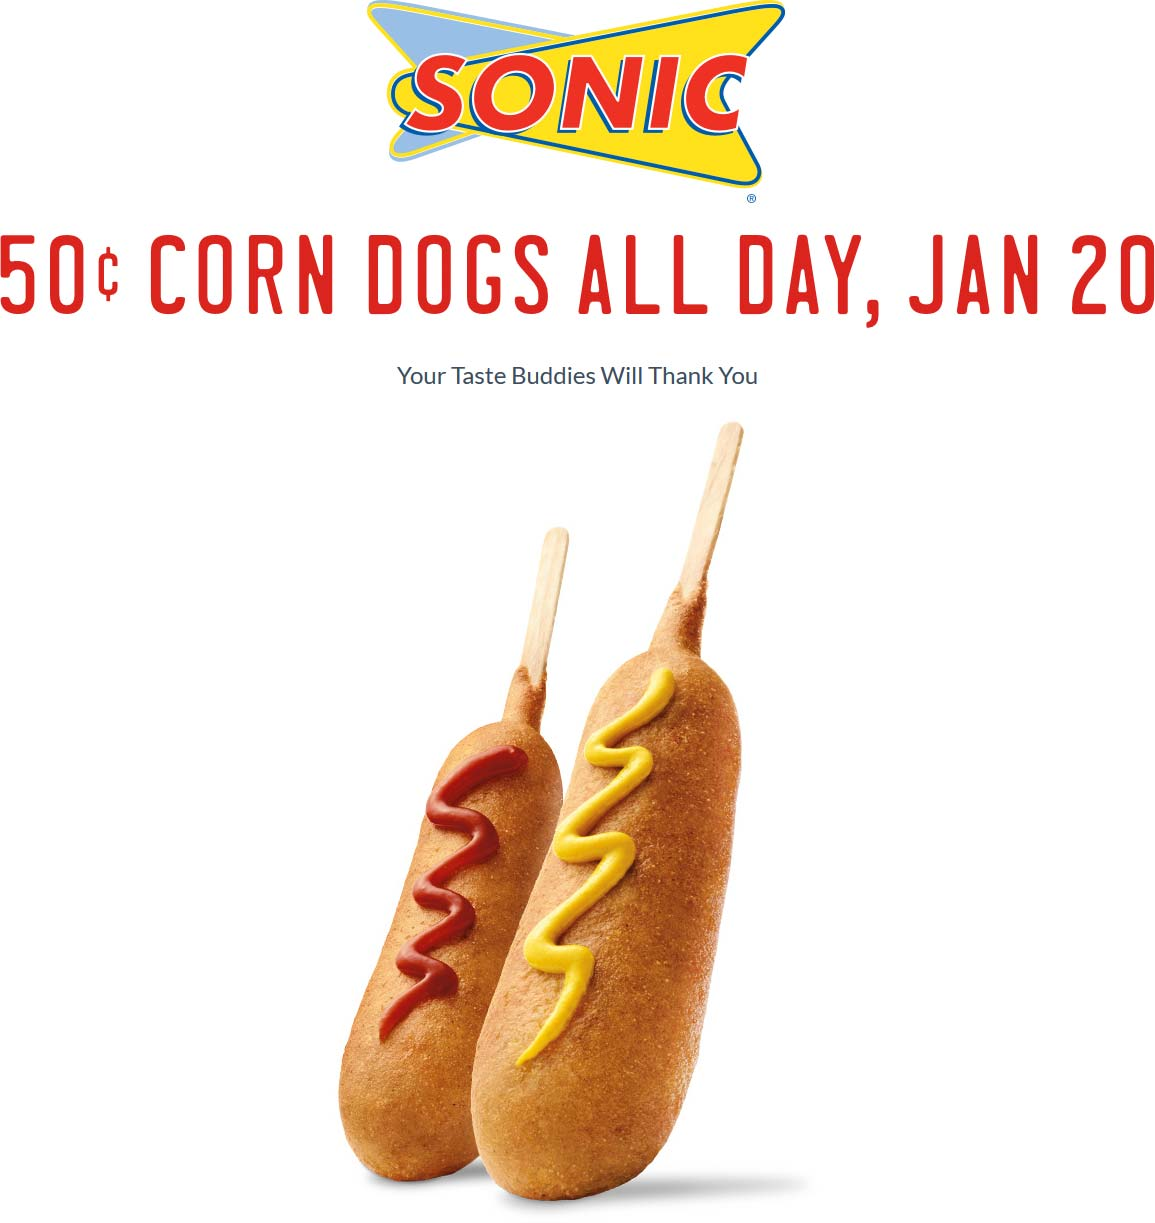 Sonic Drive-In Coupon January 2017 .50 cent corn dogs Wednesday at Sonic Drive-In